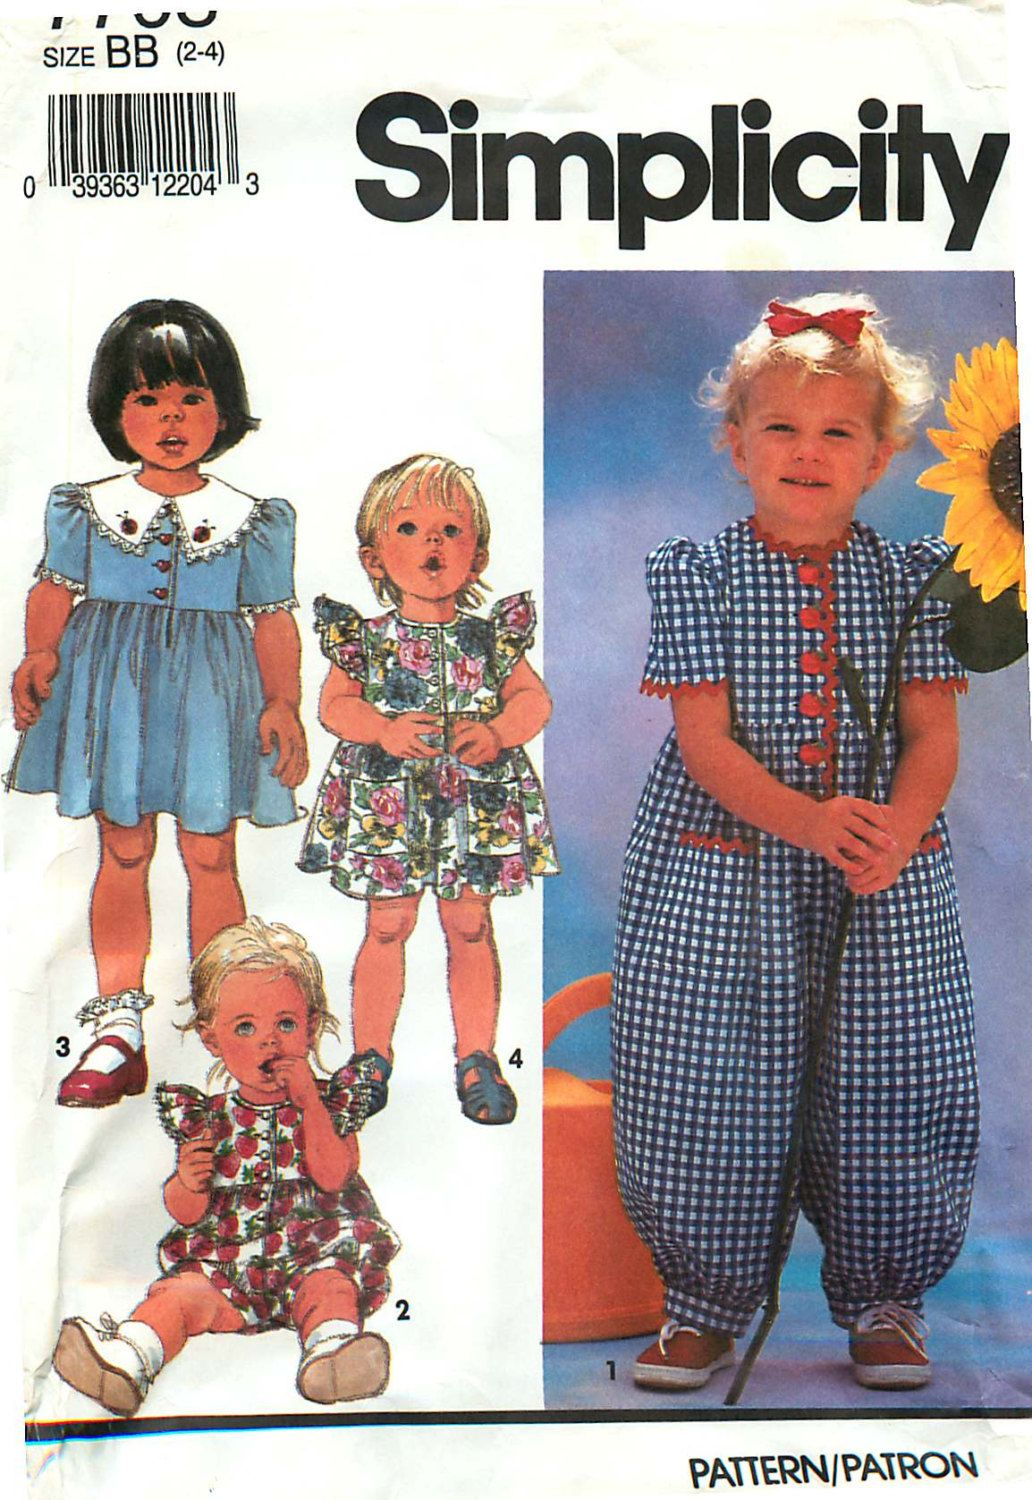 Simplicity 7703 sewing pattern for toddler romper and dress sizes simplicity 7703 sewing pattern for toddler romper and dress sizes 2 4 by carlashope jeuxipadfo Choice Image